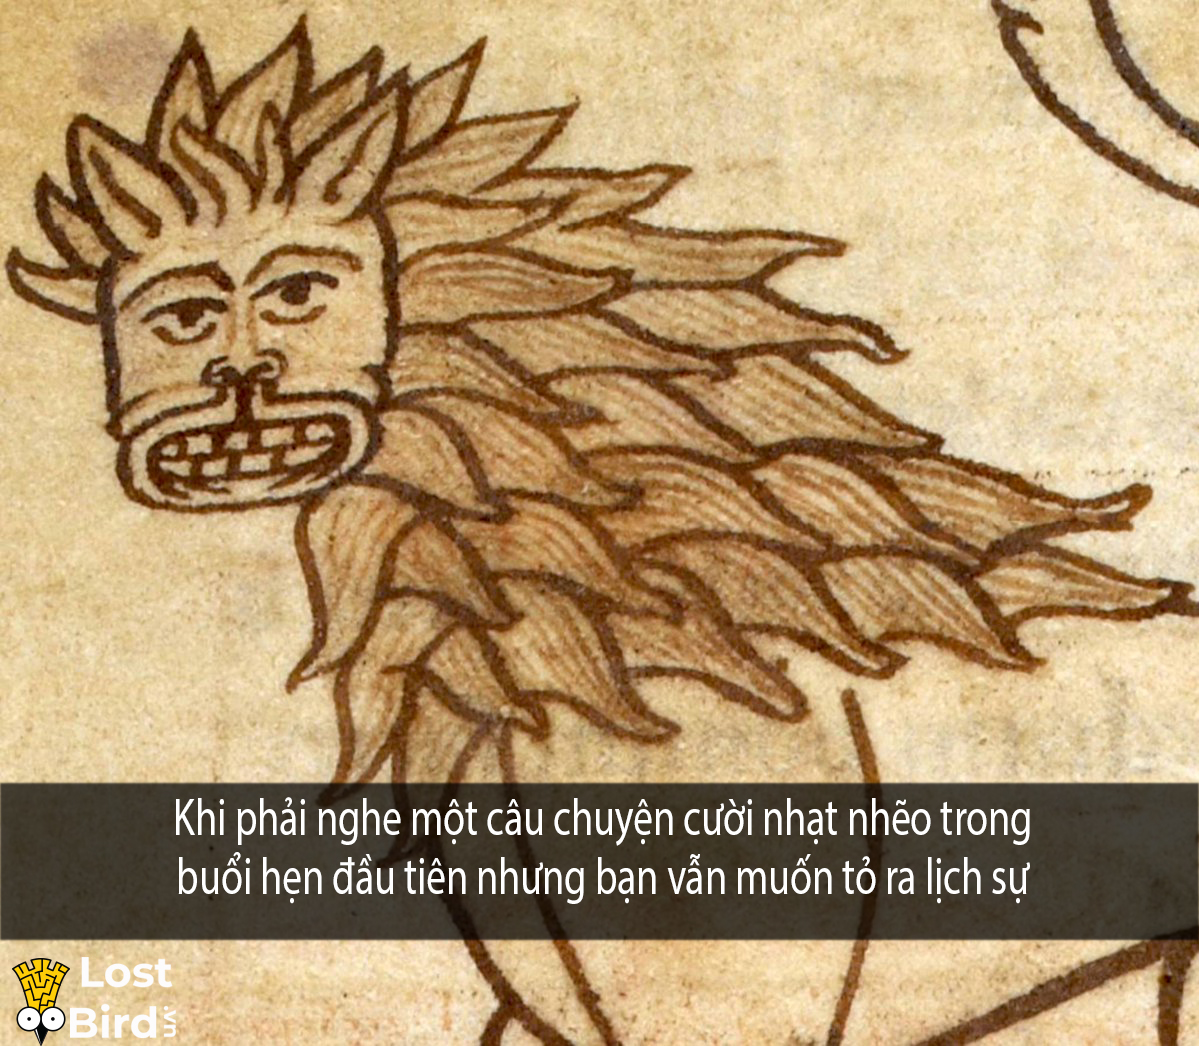 this lion is so excited that someone has more of a comment than a question